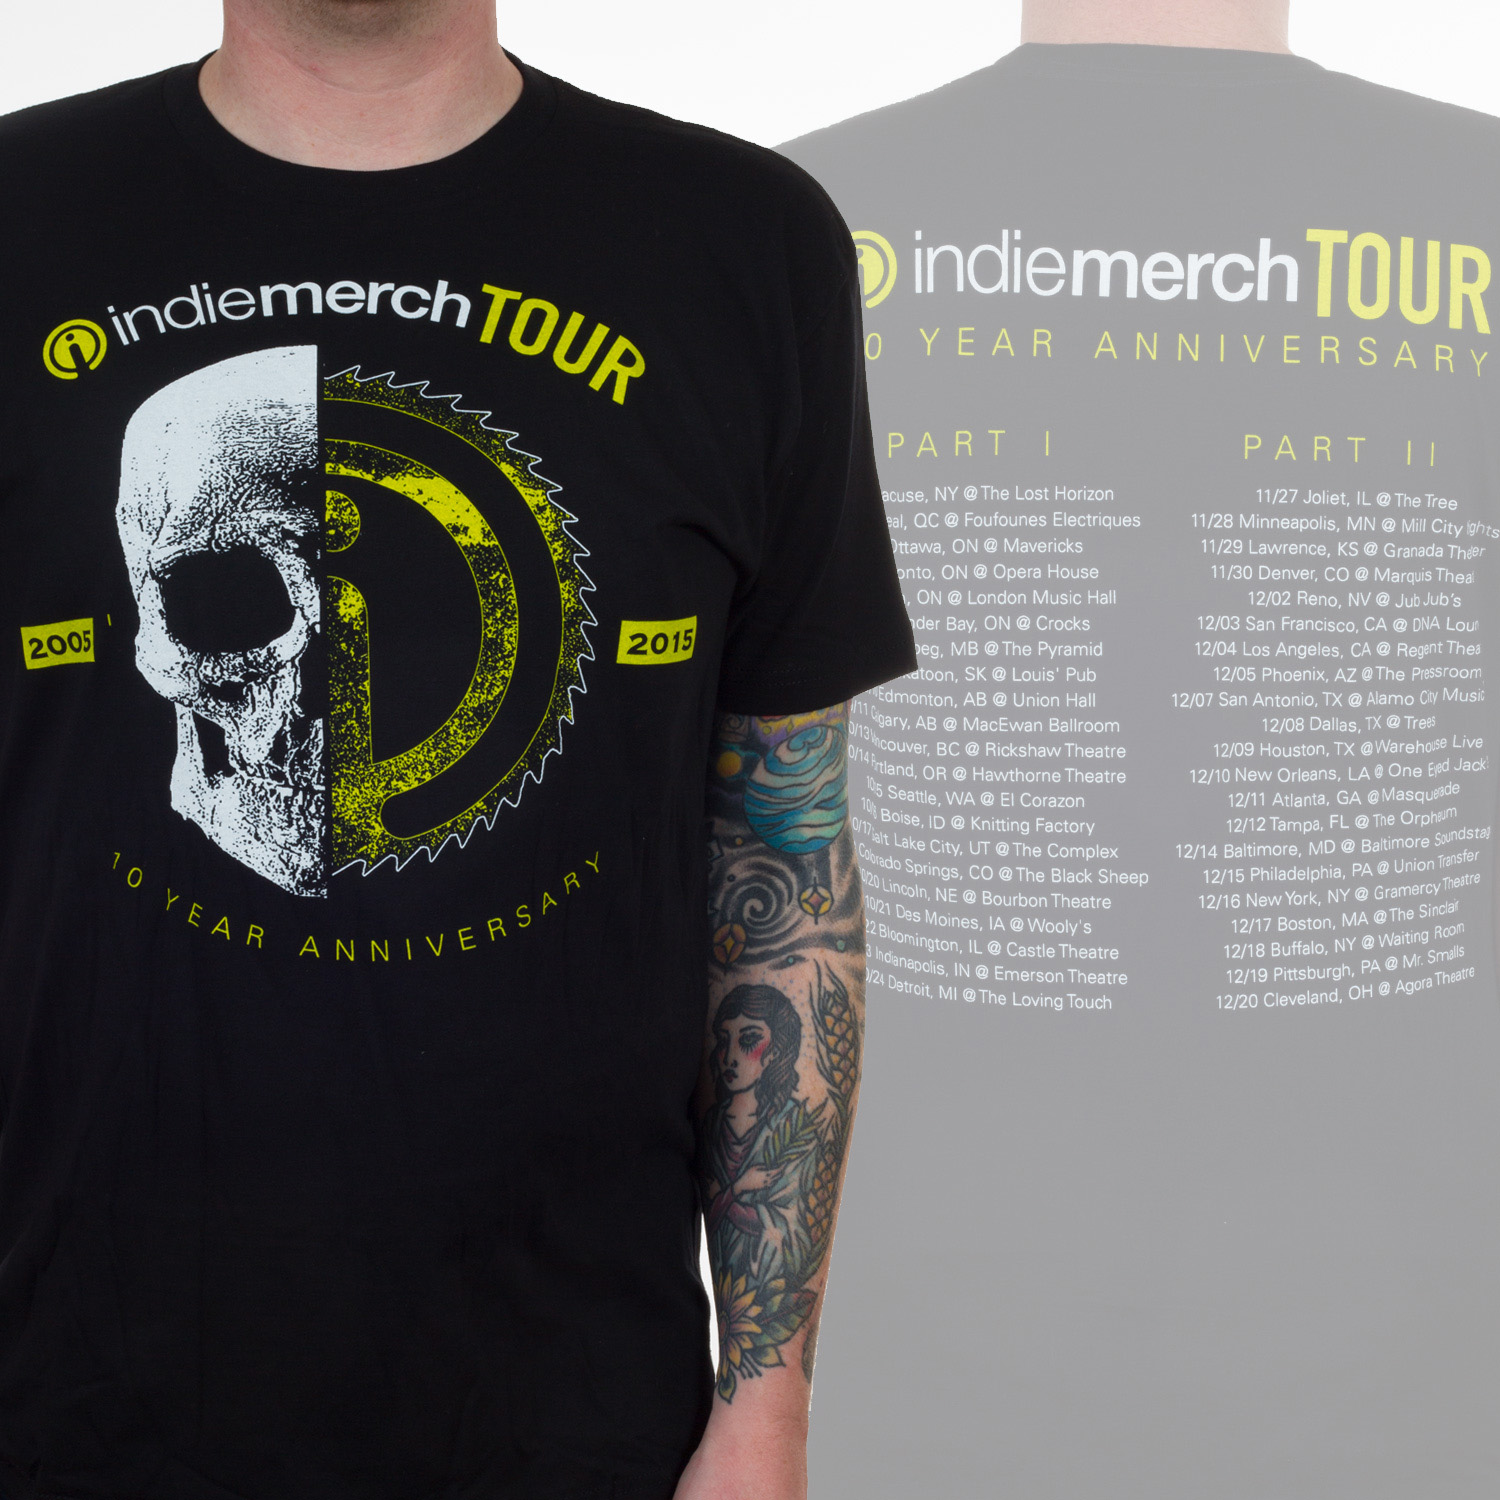 IndieMerch Tour 2015